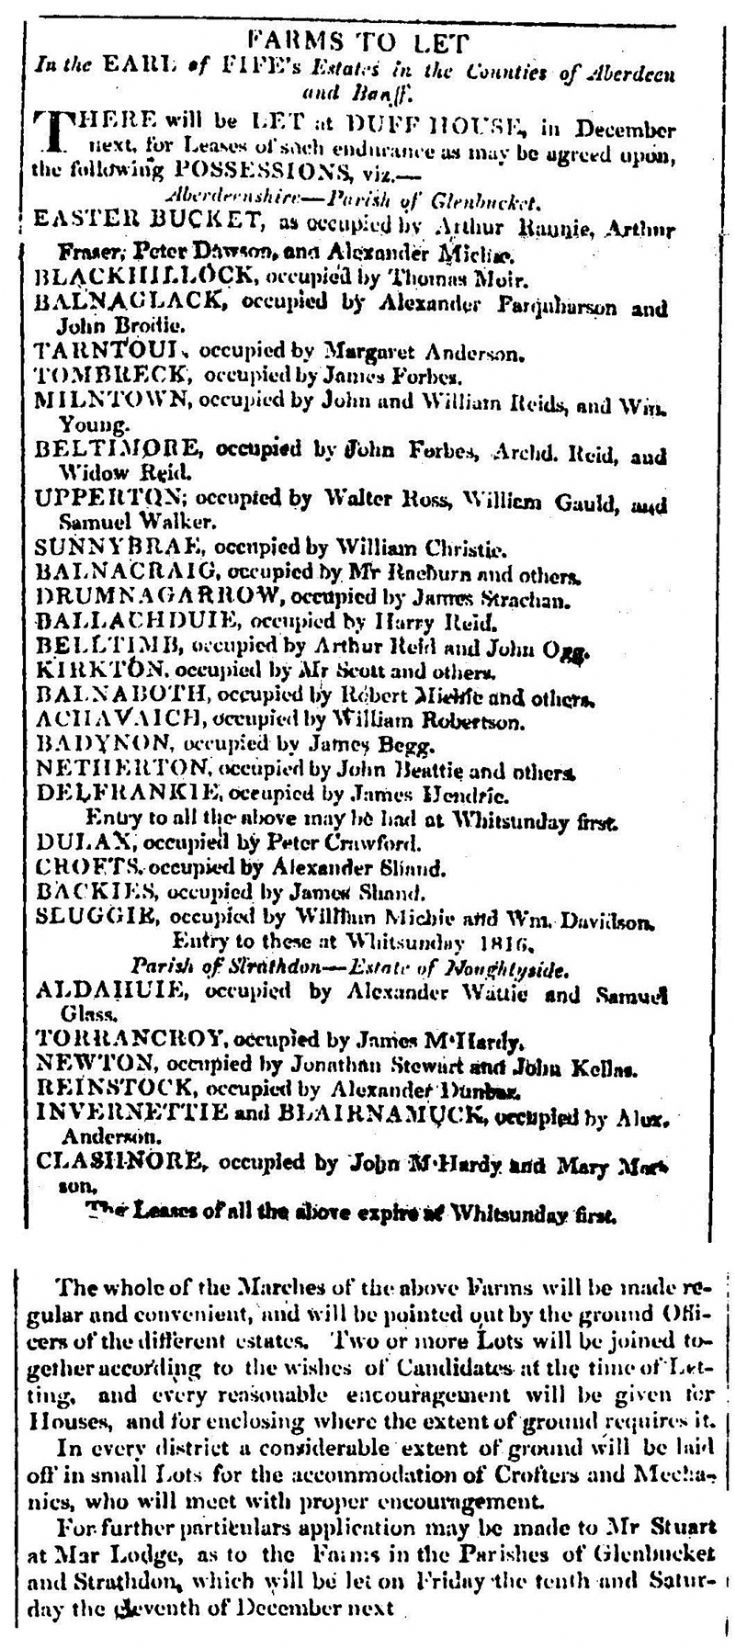 125 Letting of Farms 1813